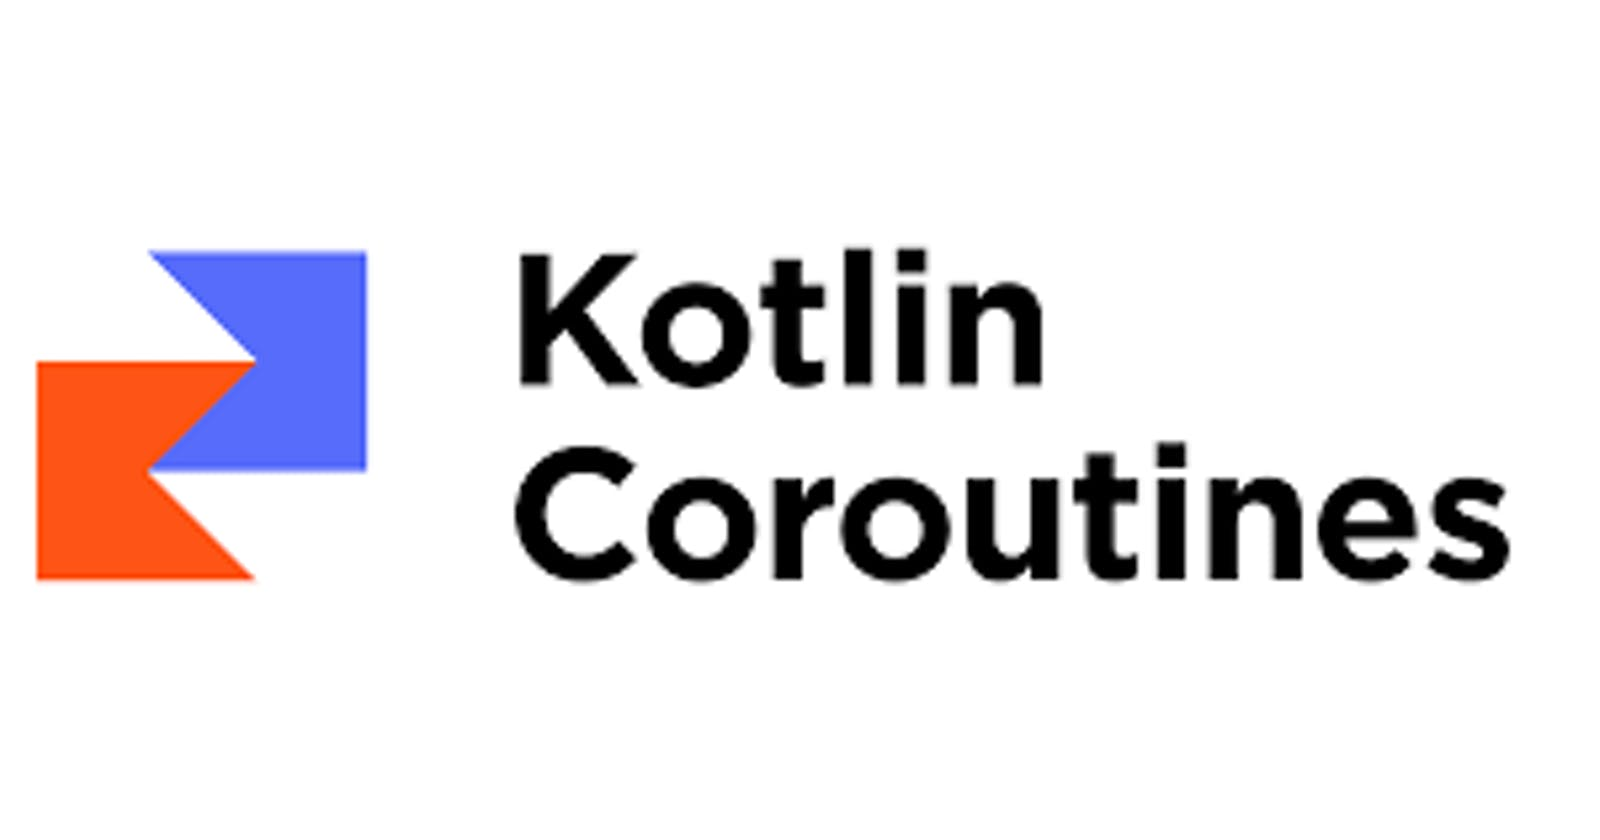 Implementing Kotlin Coroutines in Android within 5 minutes